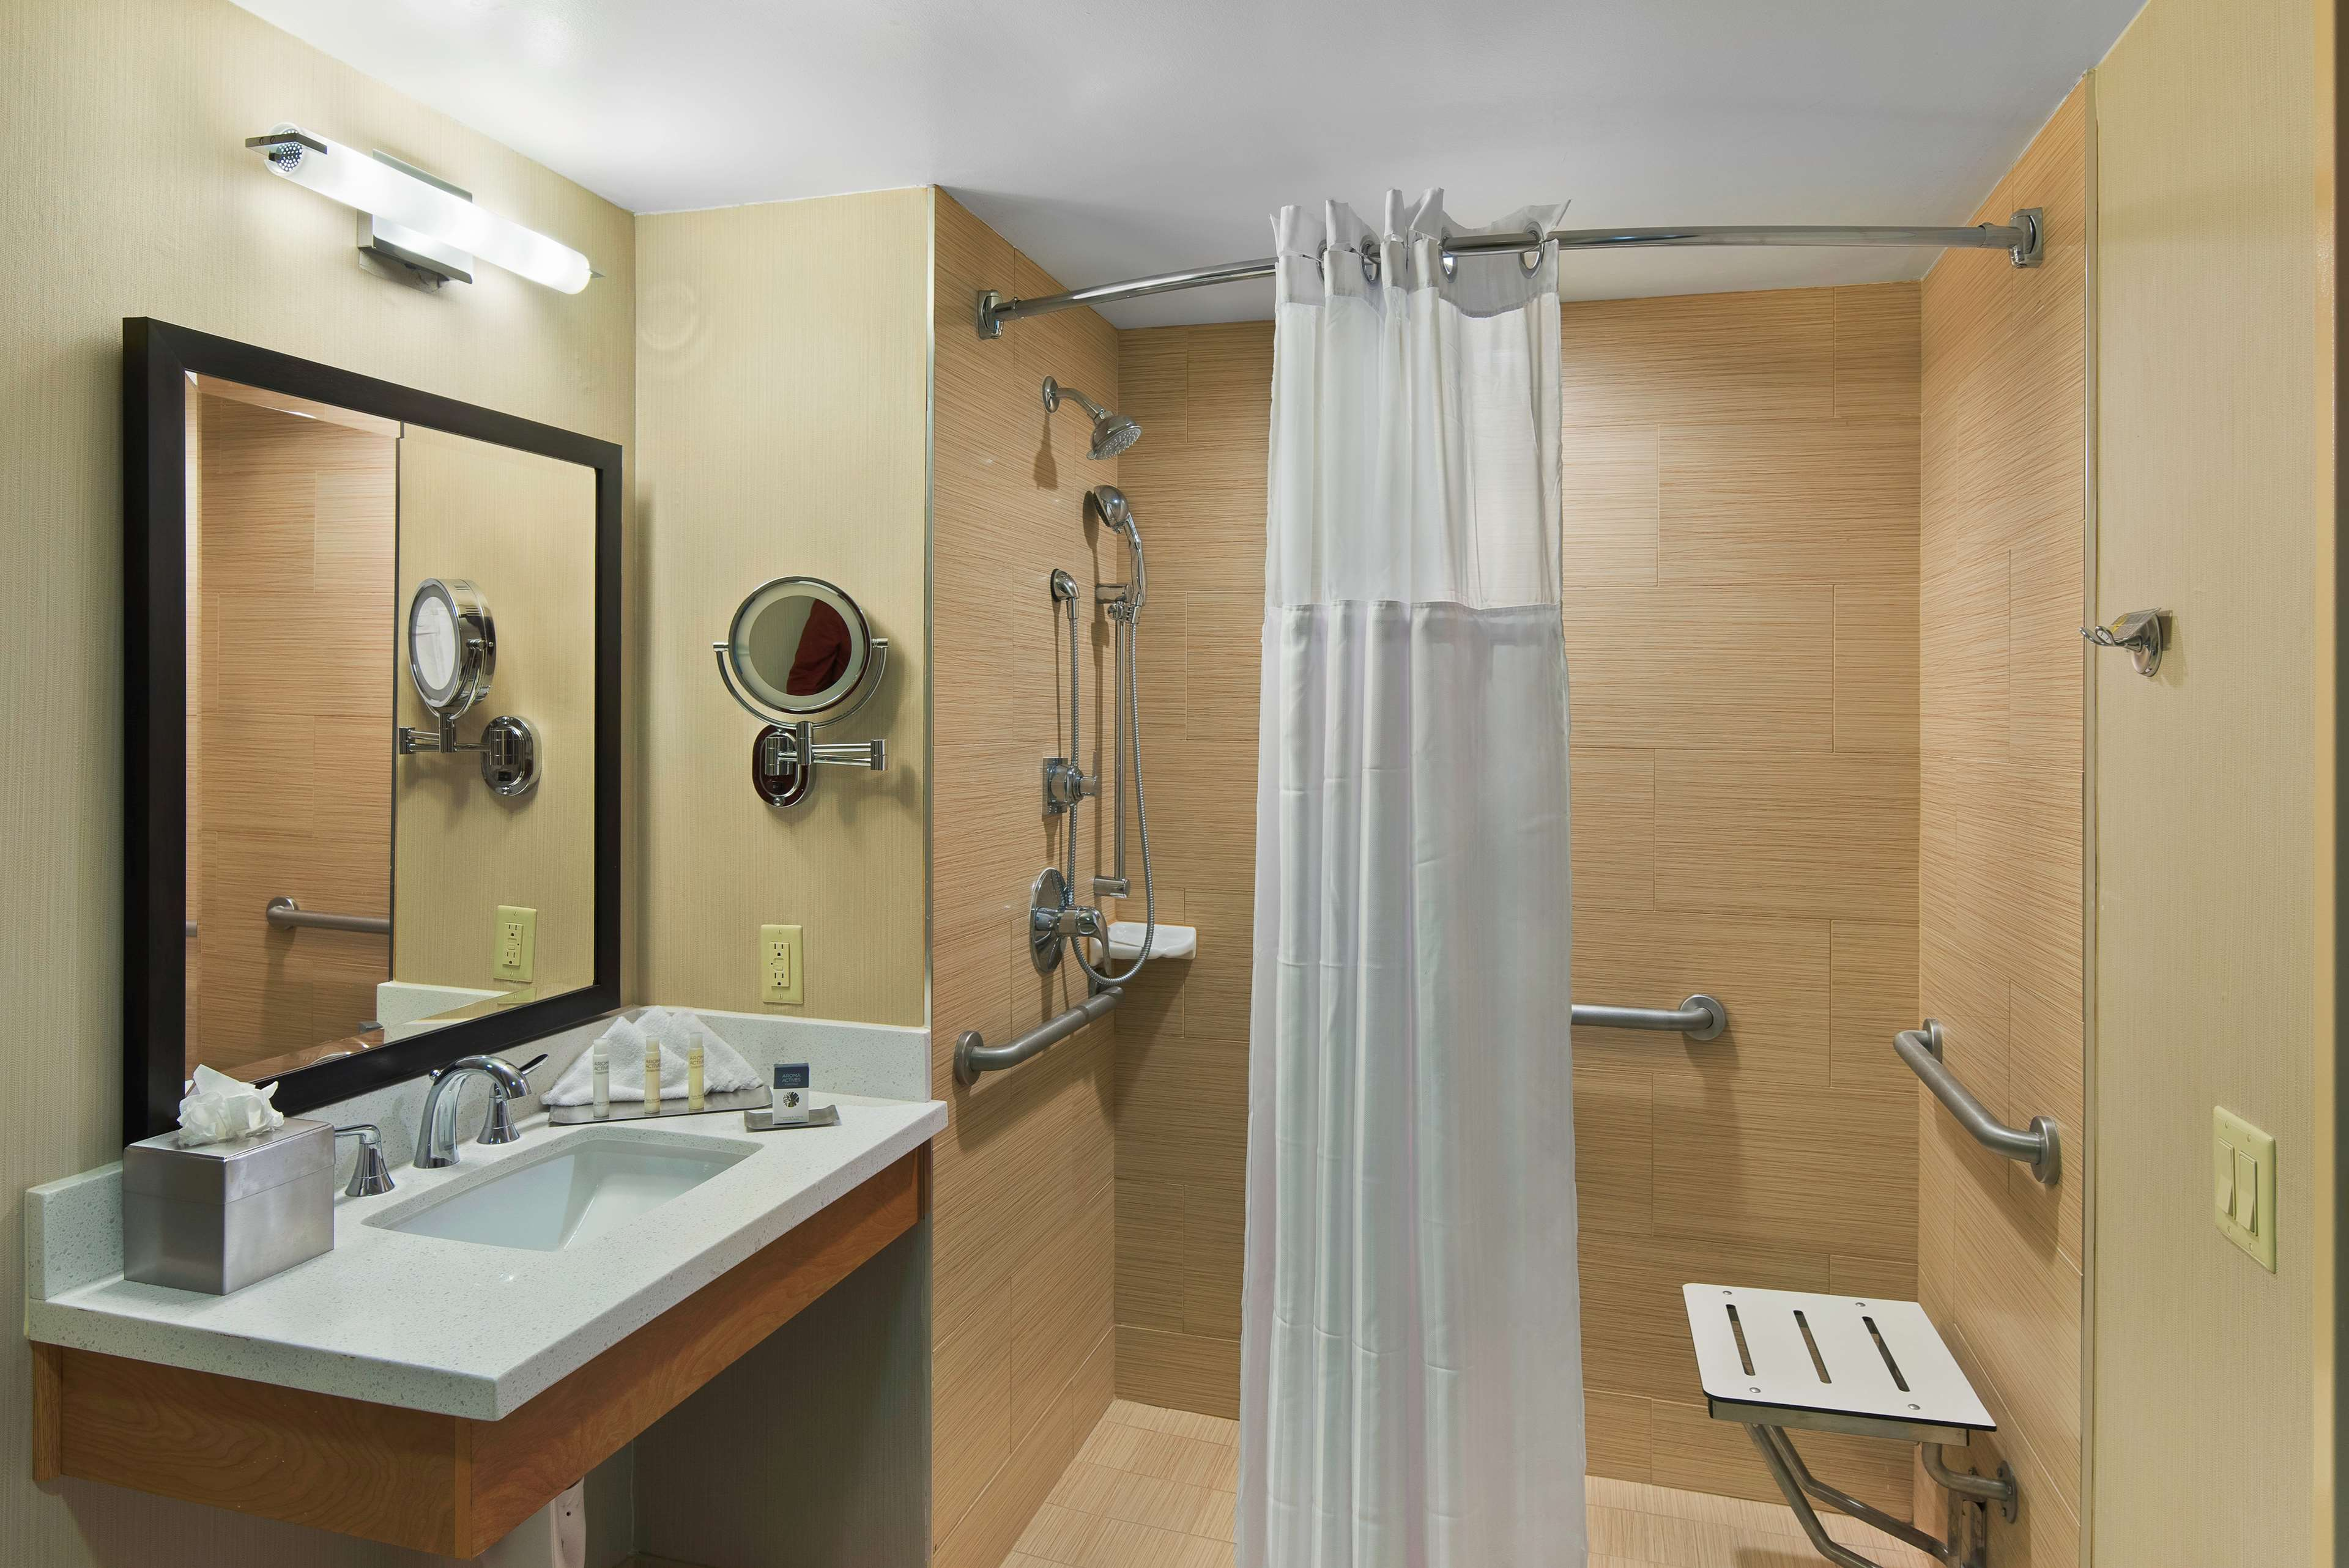 DoubleTree by Hilton Hotel San Pedro - Port of Los Angeles image 19